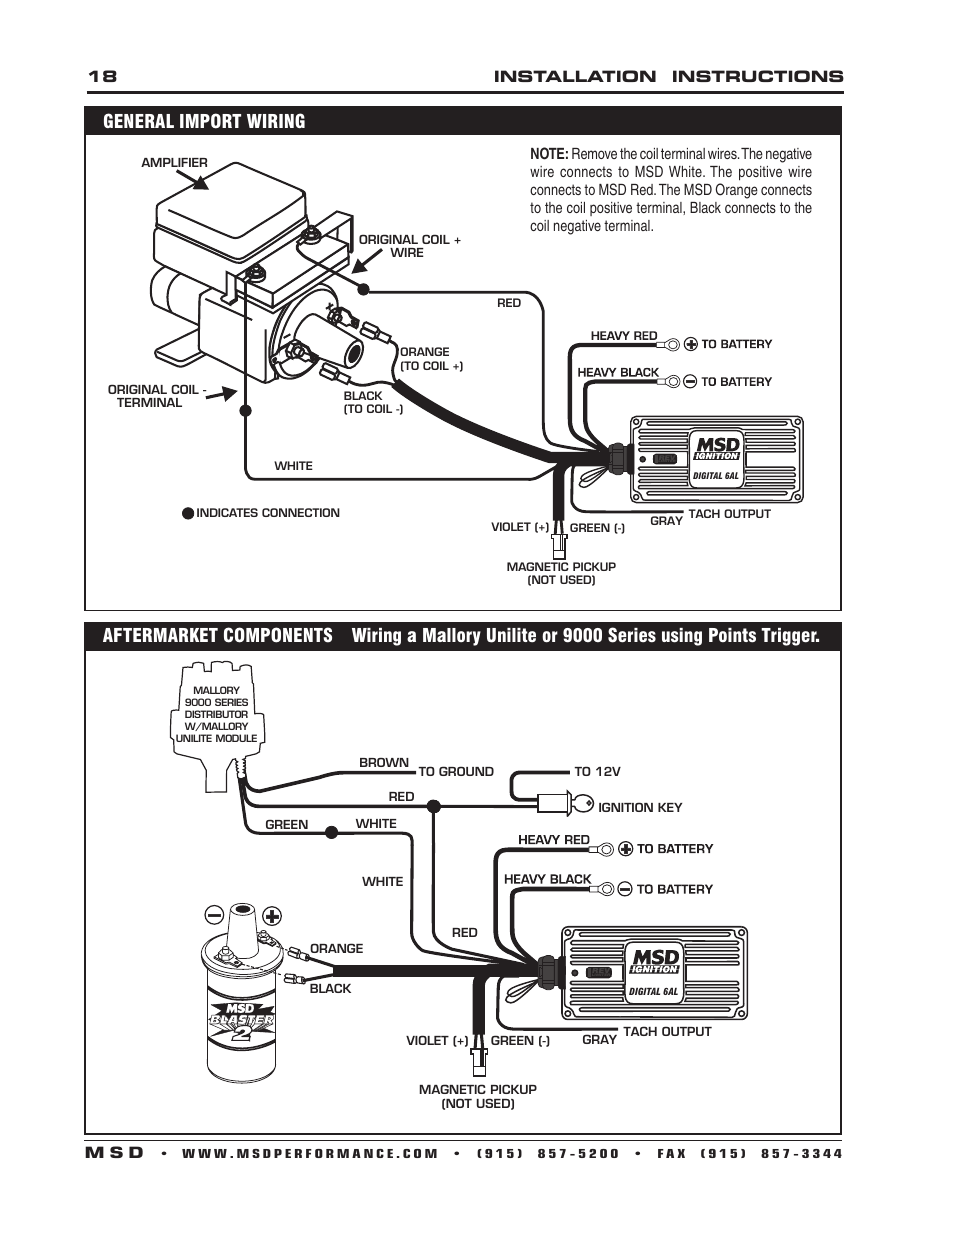 Msd 6201 Wiring Diagram For Ford Mustang 1987 50 Schematics Ignition Schematic Diagrams